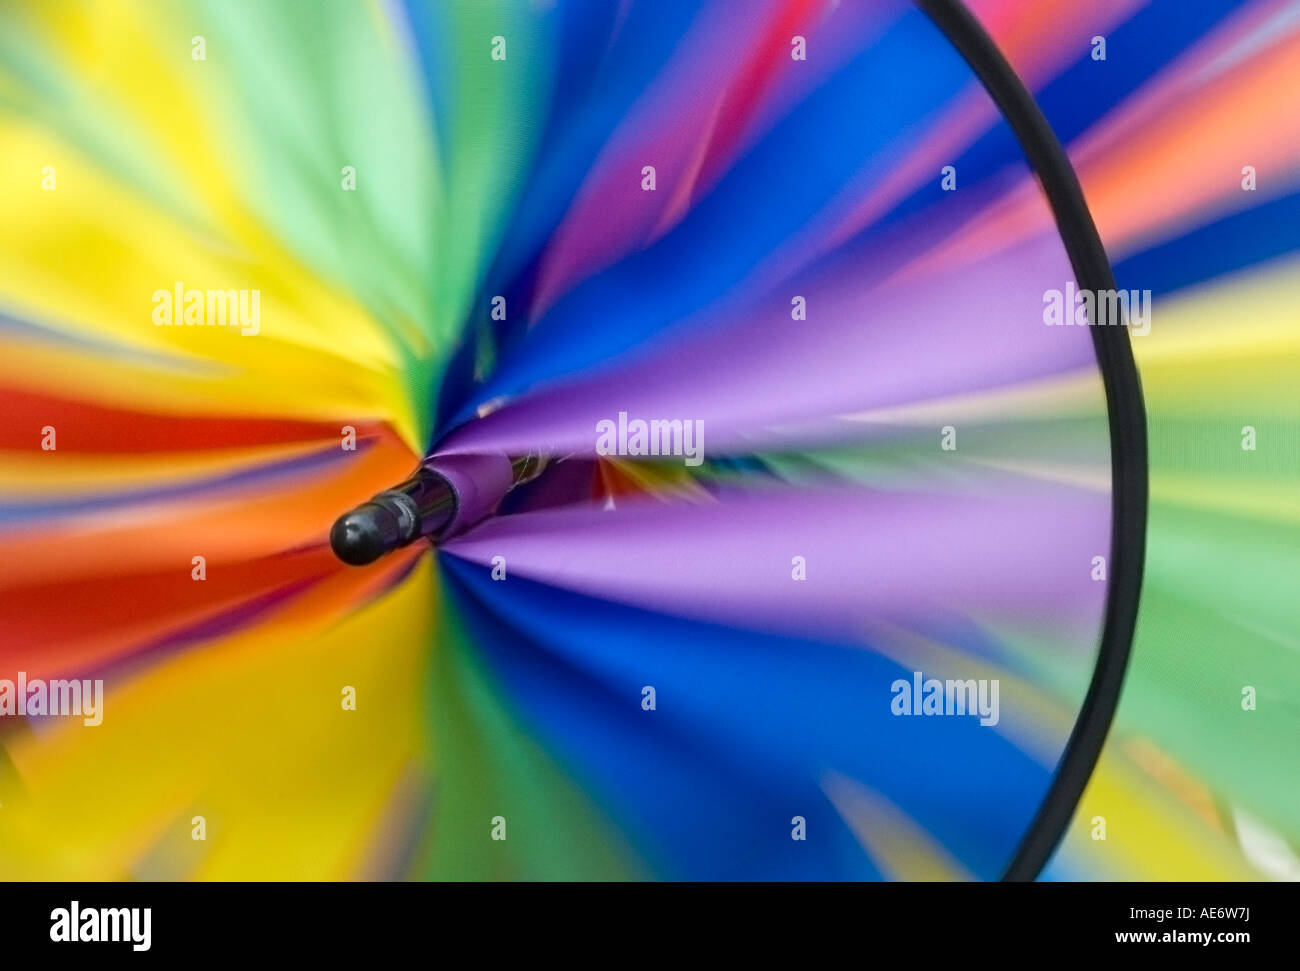 A decorative windmill. A spiral weather vane or wind vane made of colorful strips of cloth and sprockets - Stock Image